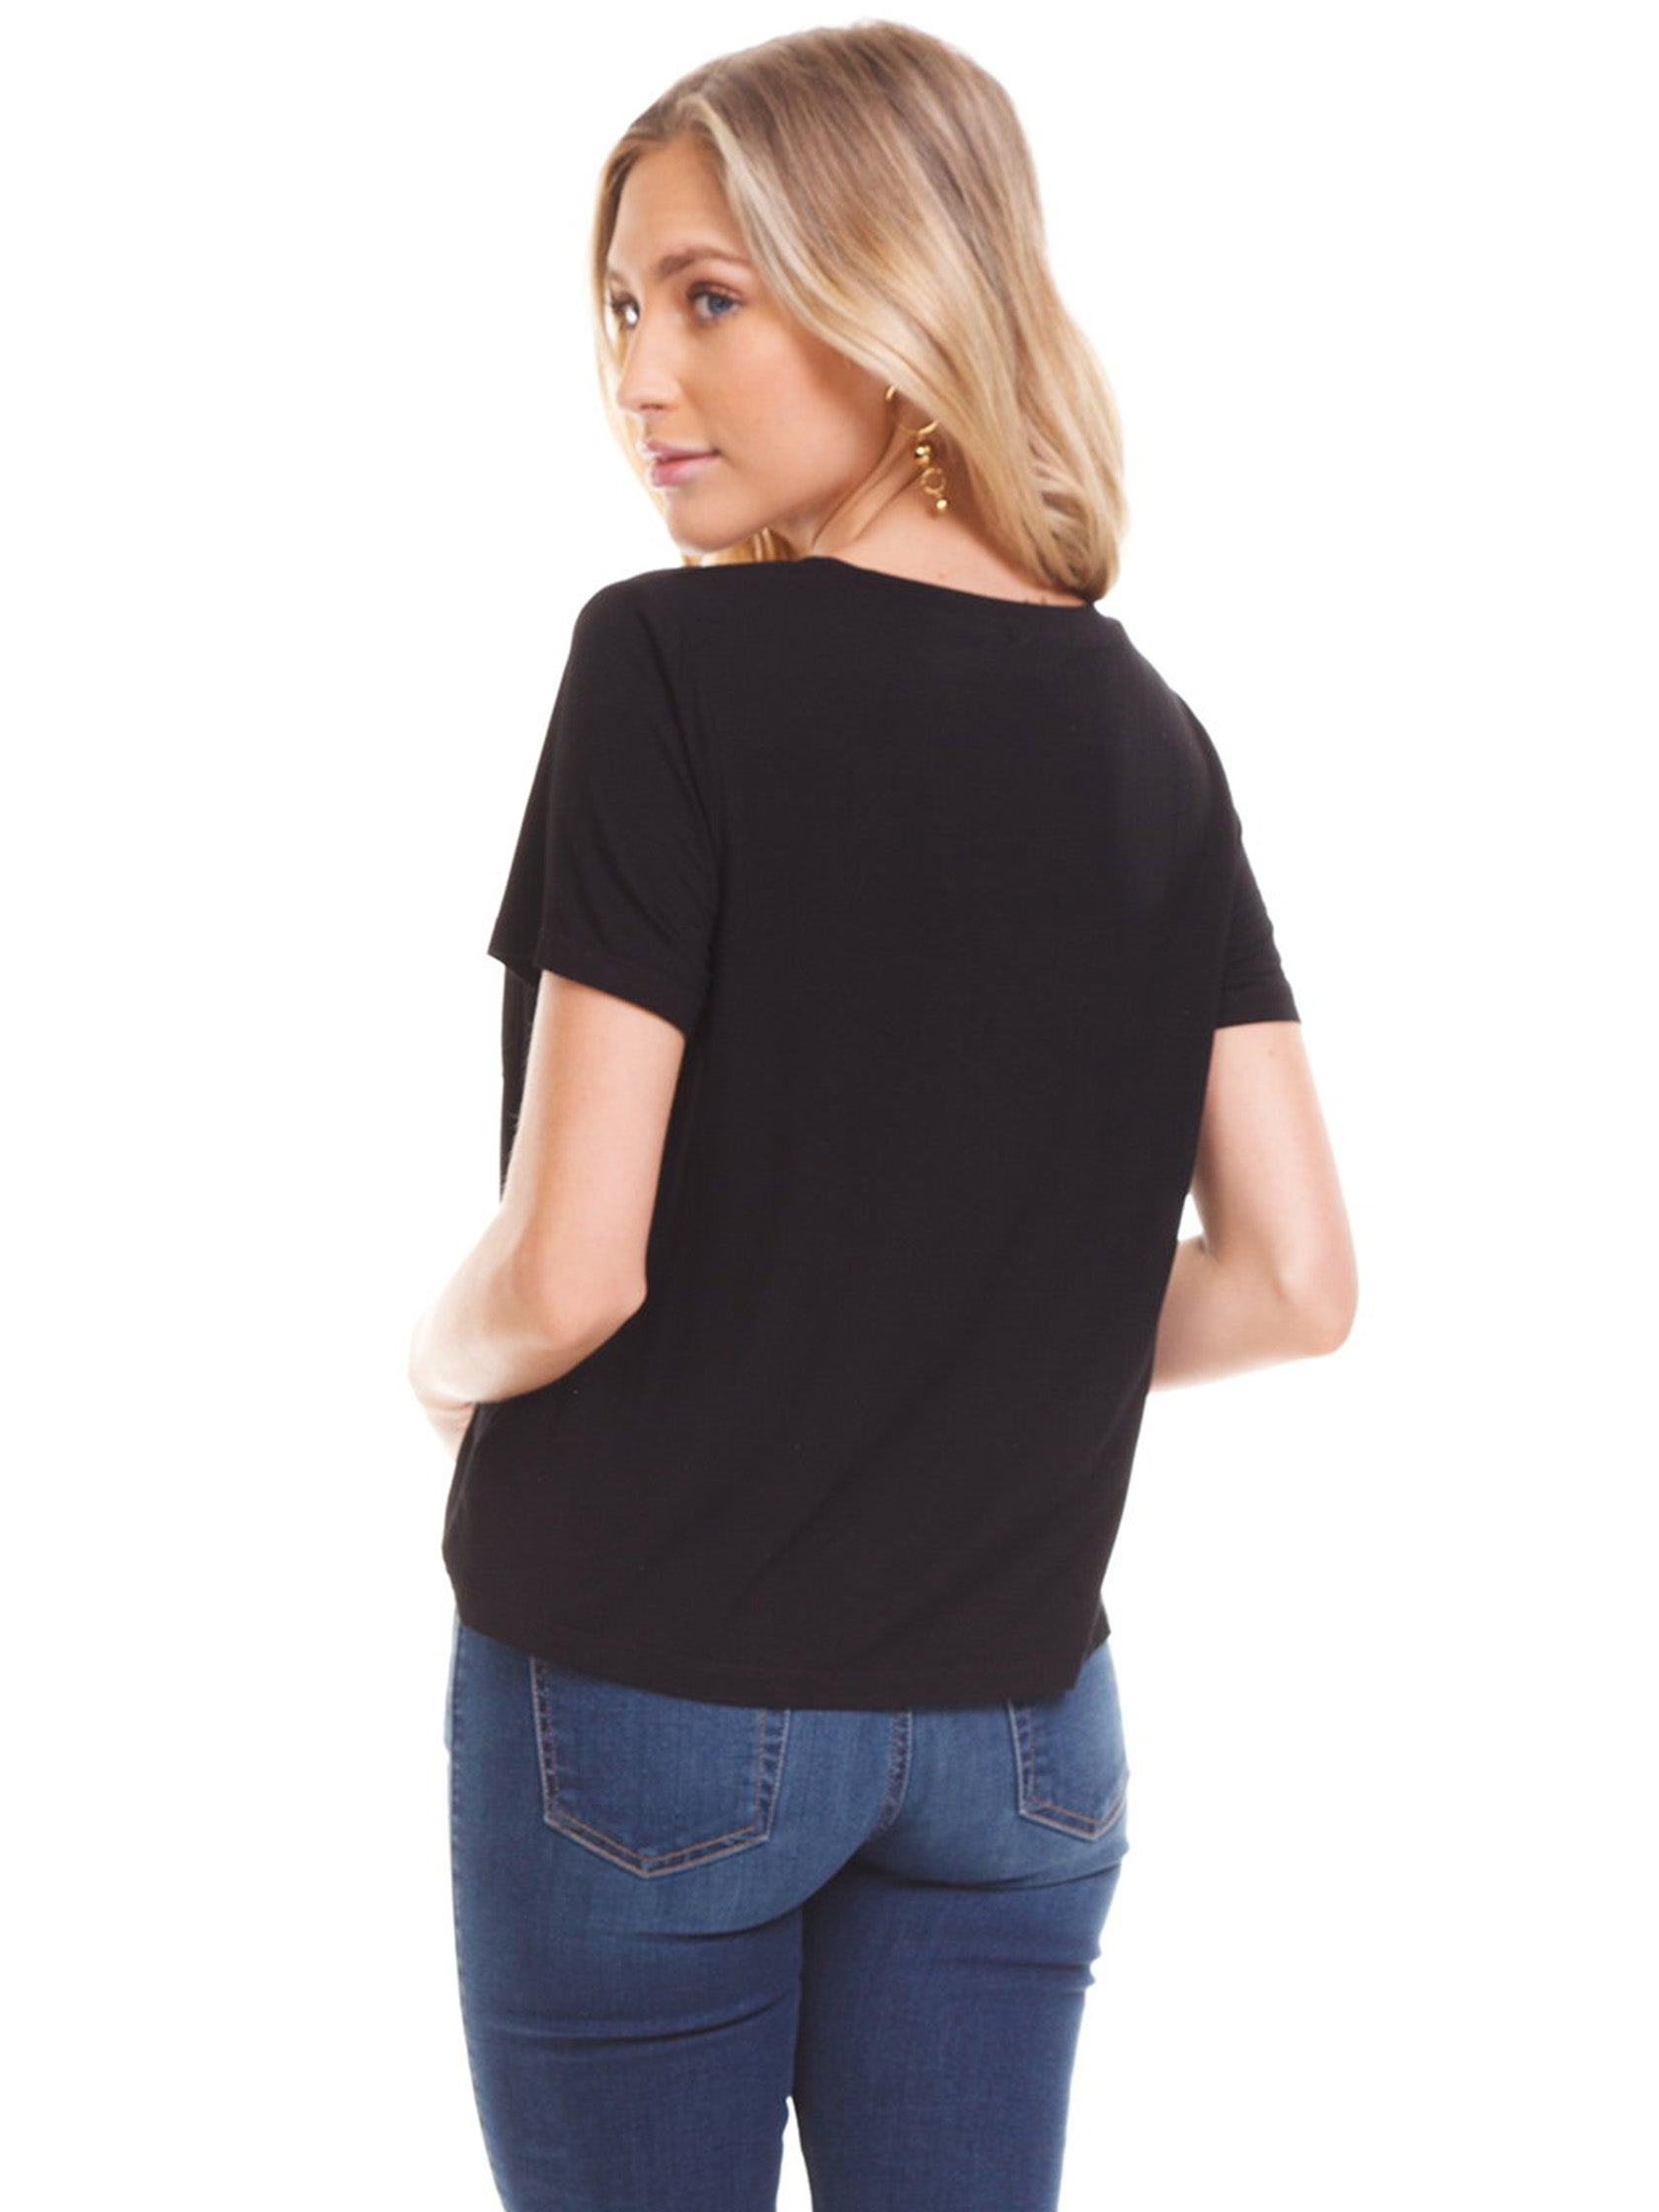 Women outfit in a top rental from Splendid called Short Sleeve Pocket Tee